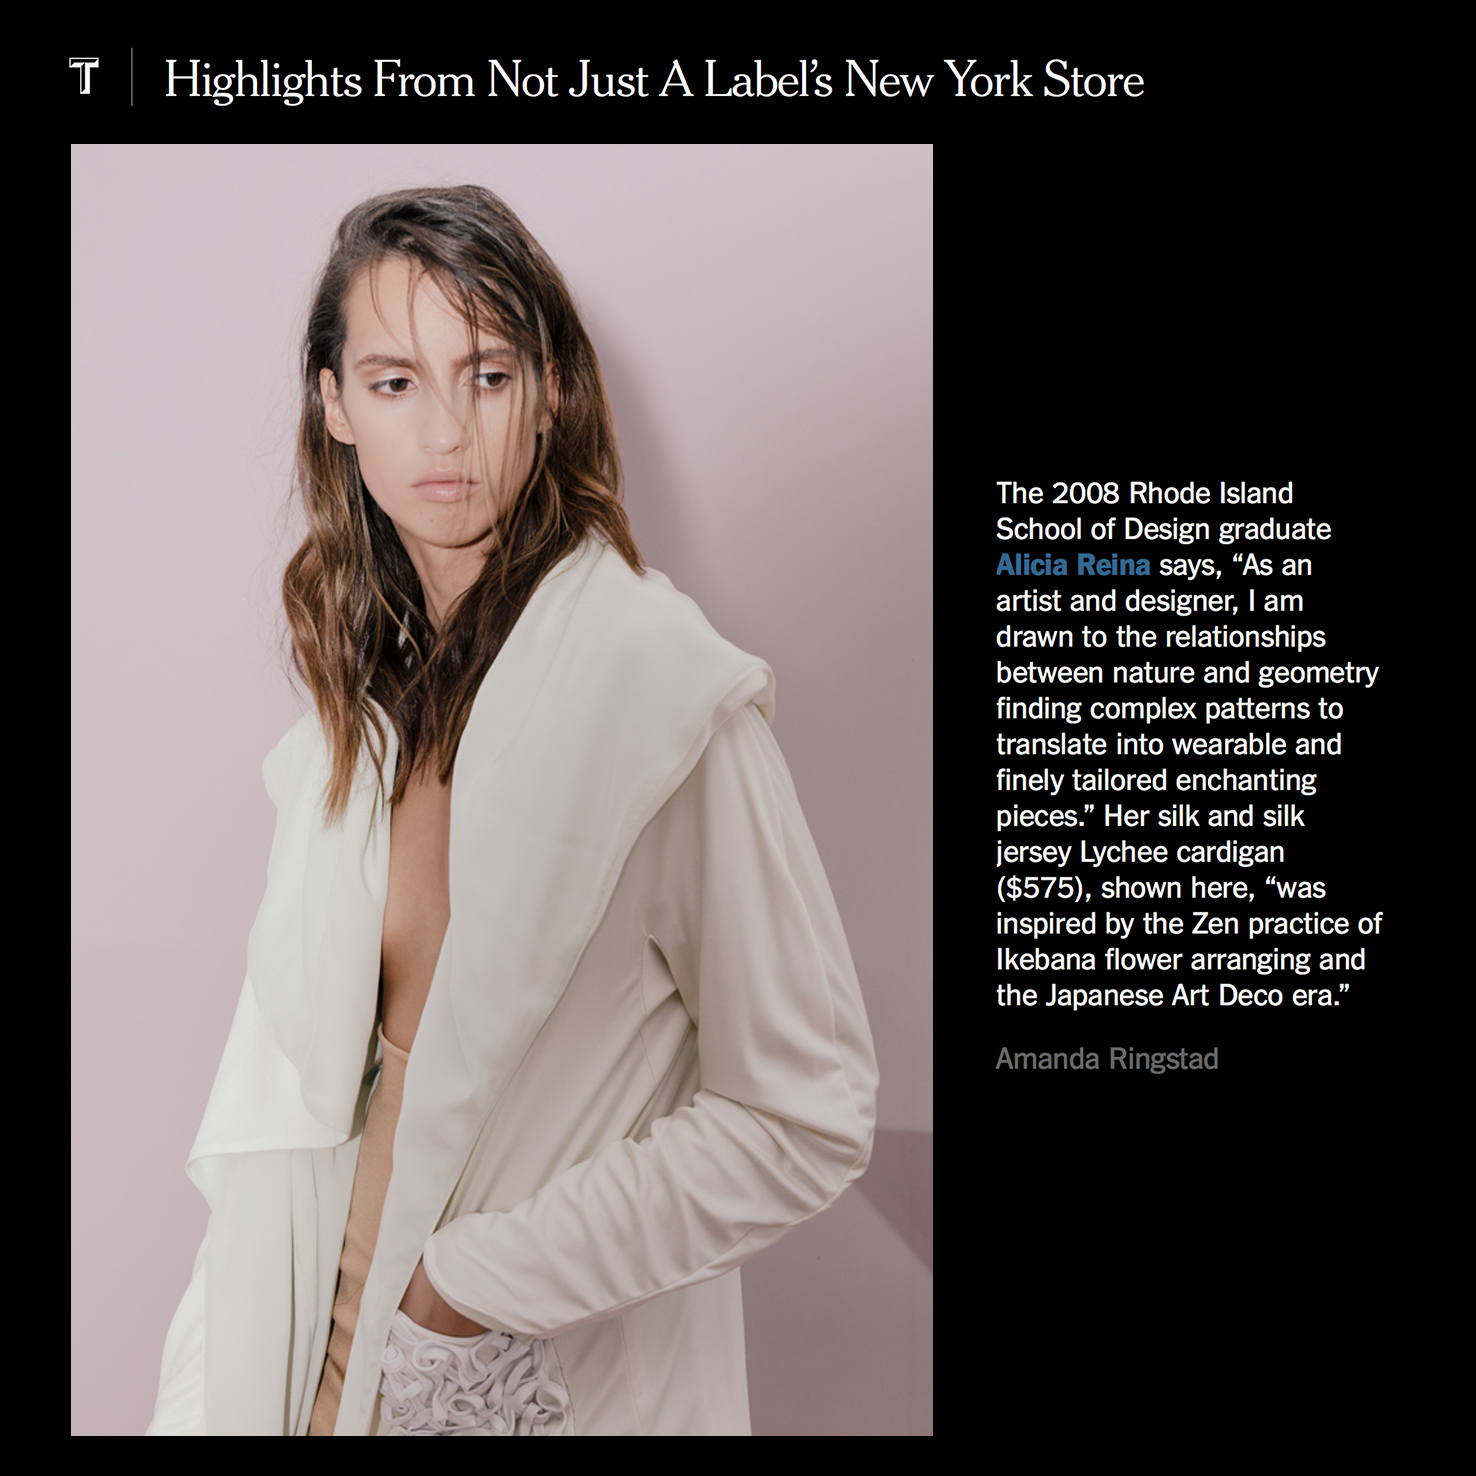 Highlights for Not Just A Labels New York Store